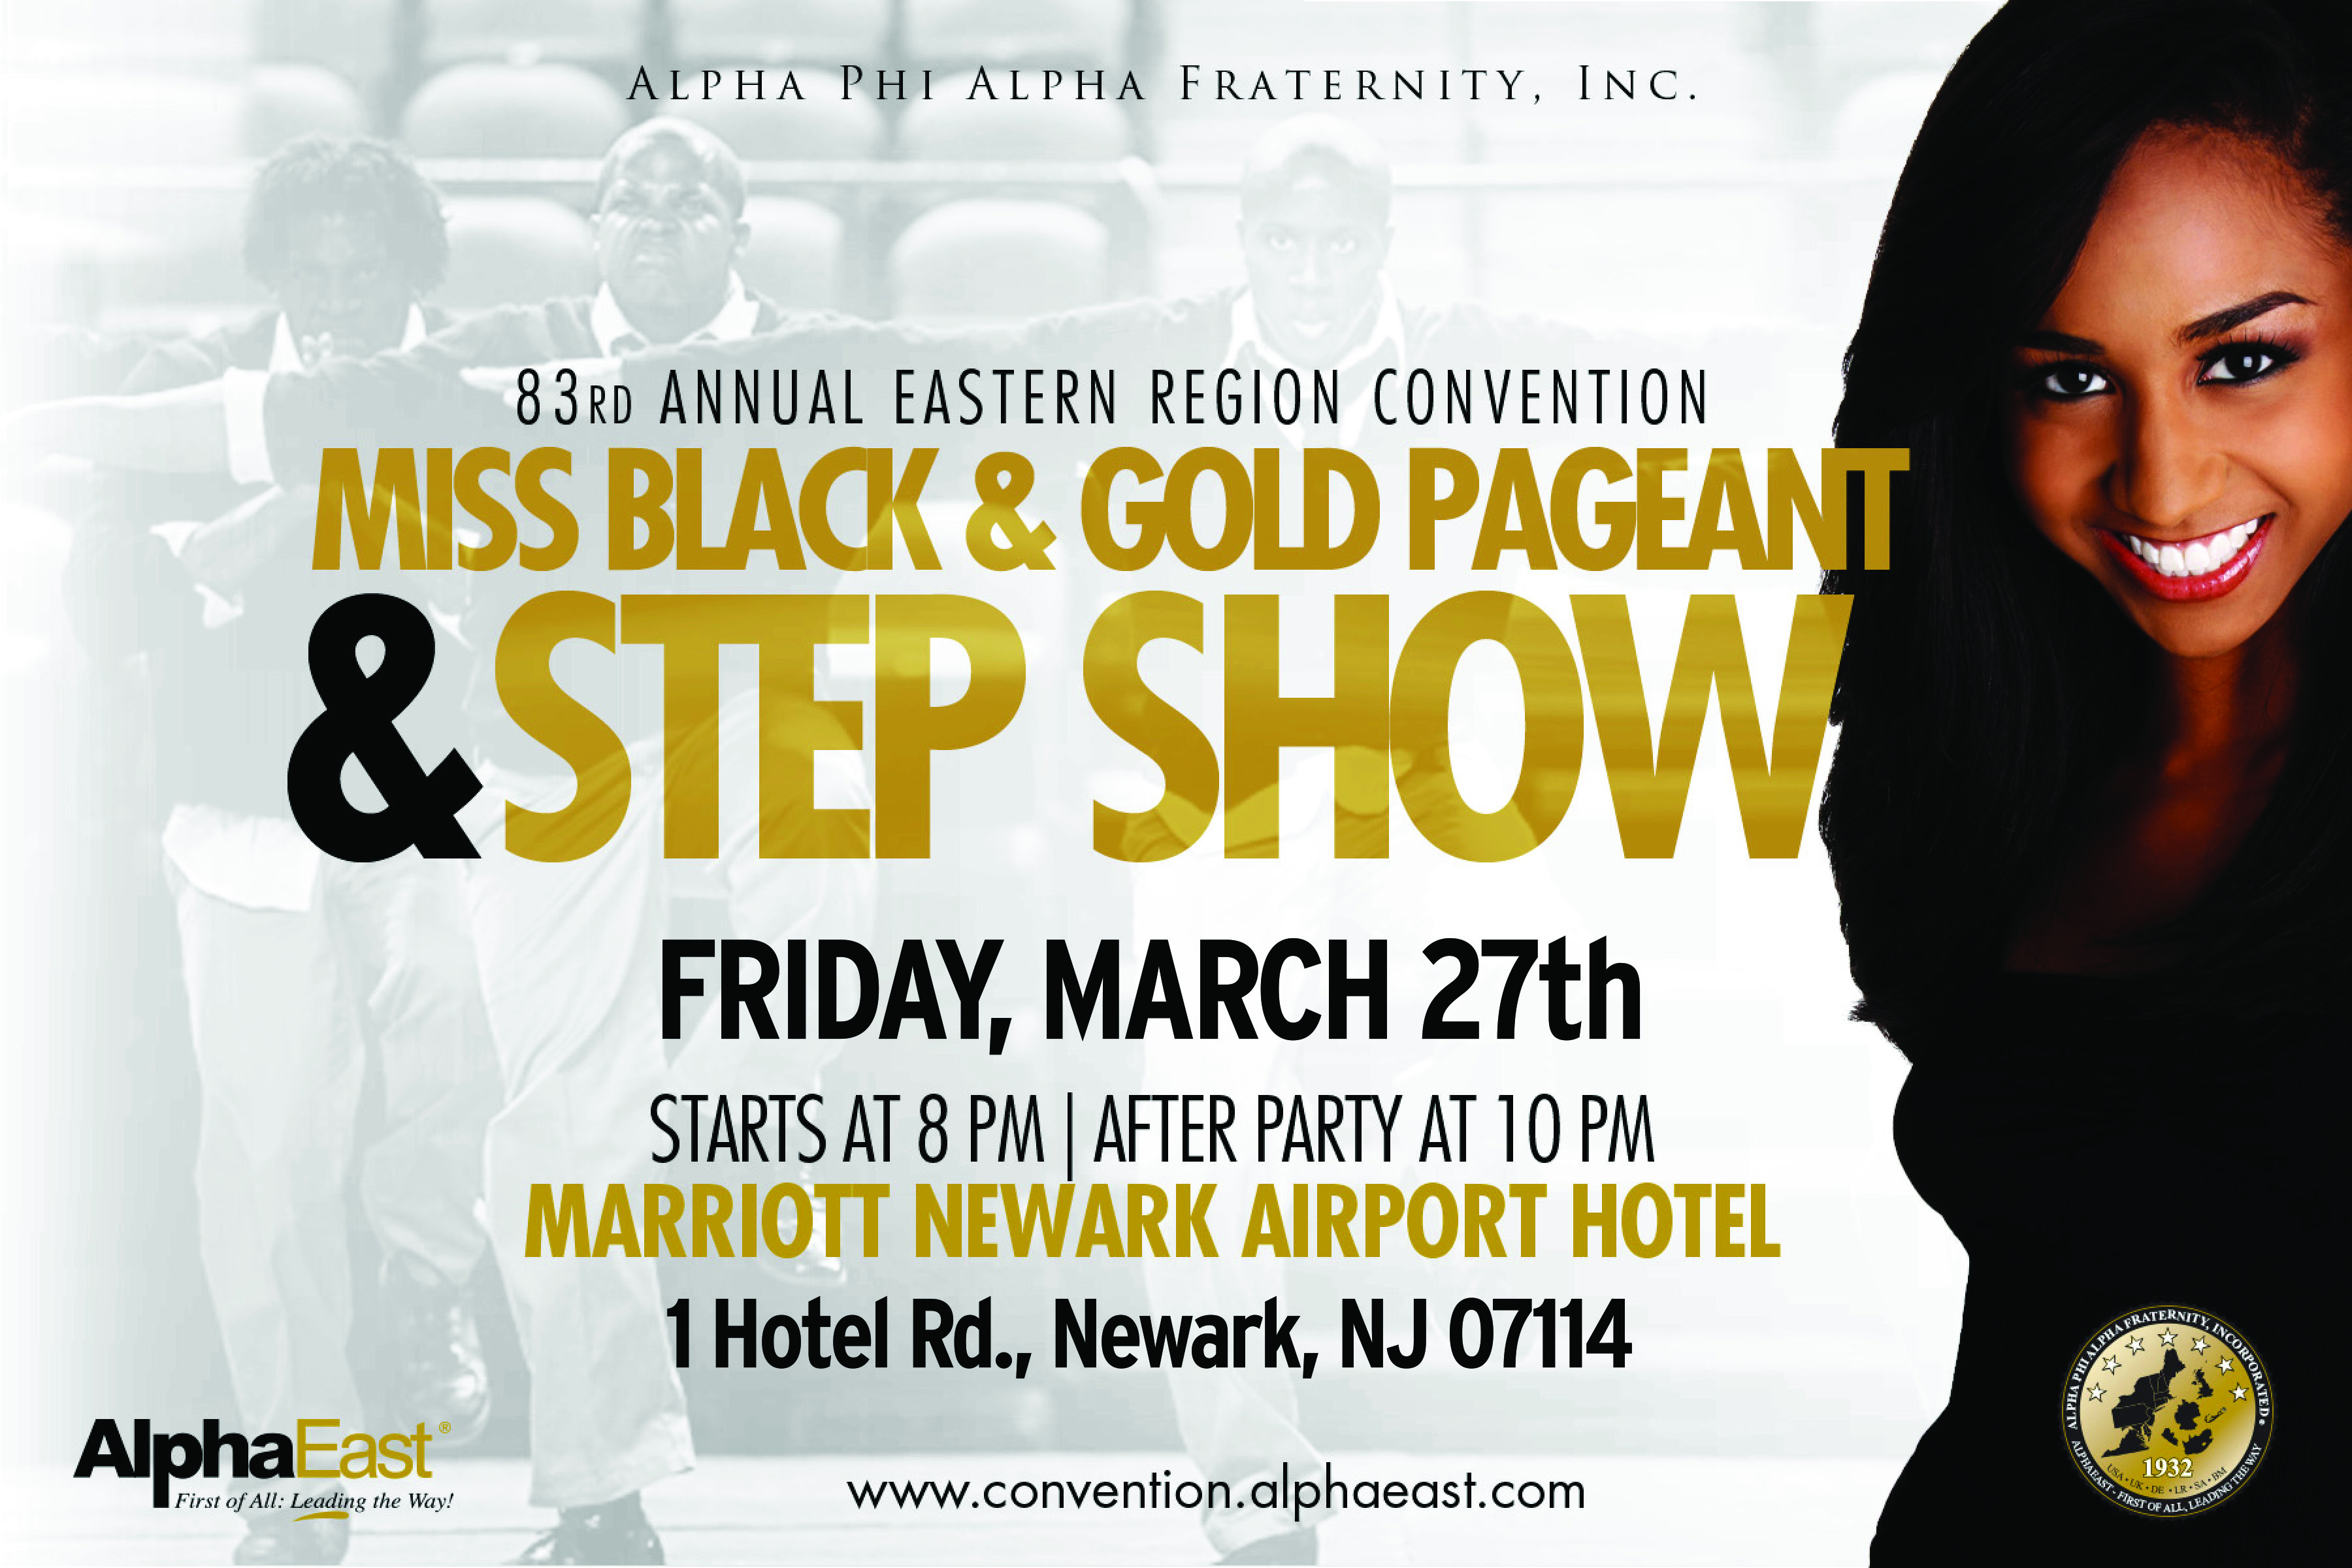 miss black & gold pageant & step show